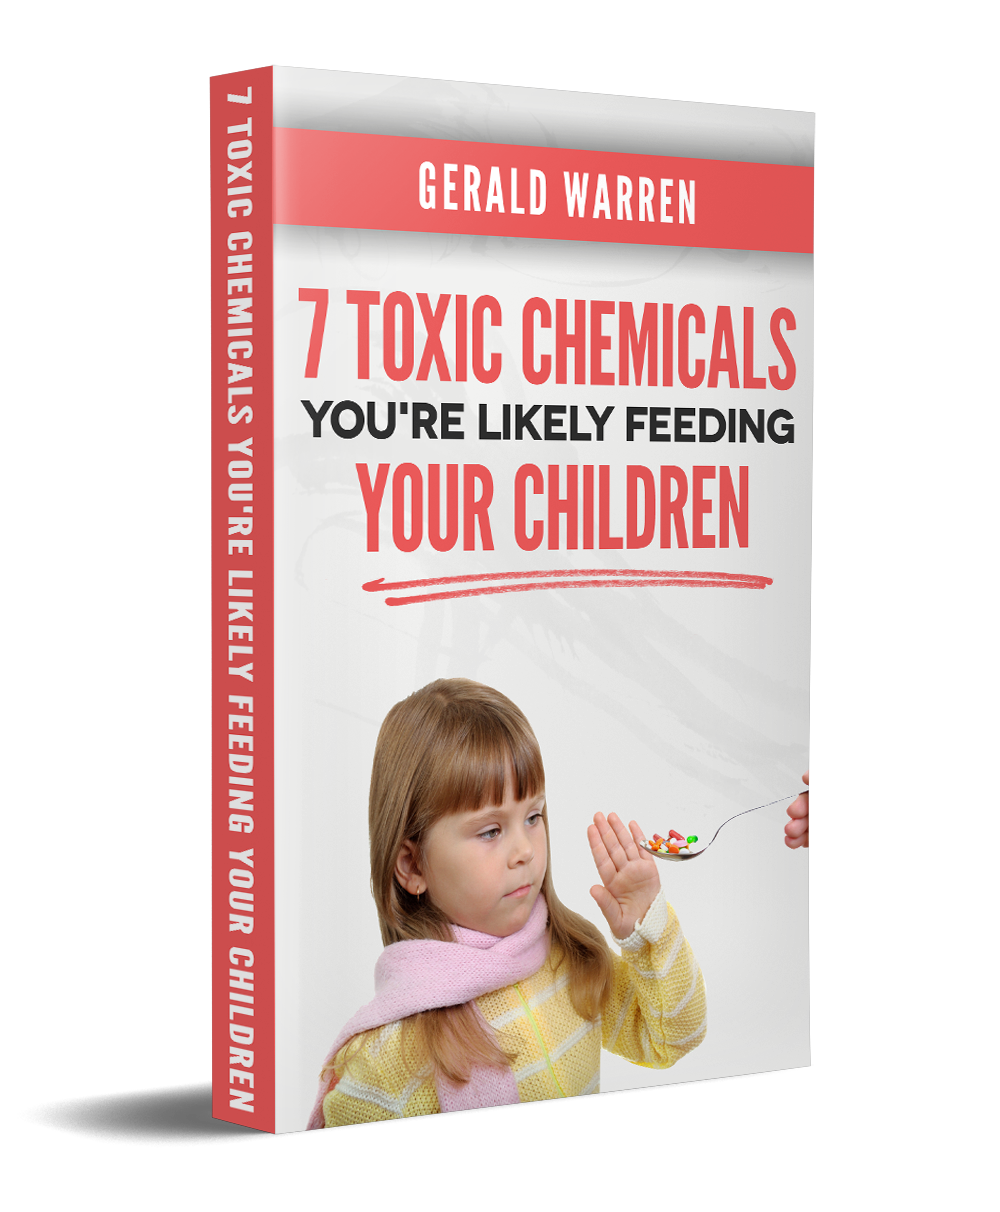 7 Toxic Chemicals You're likely feeding your children